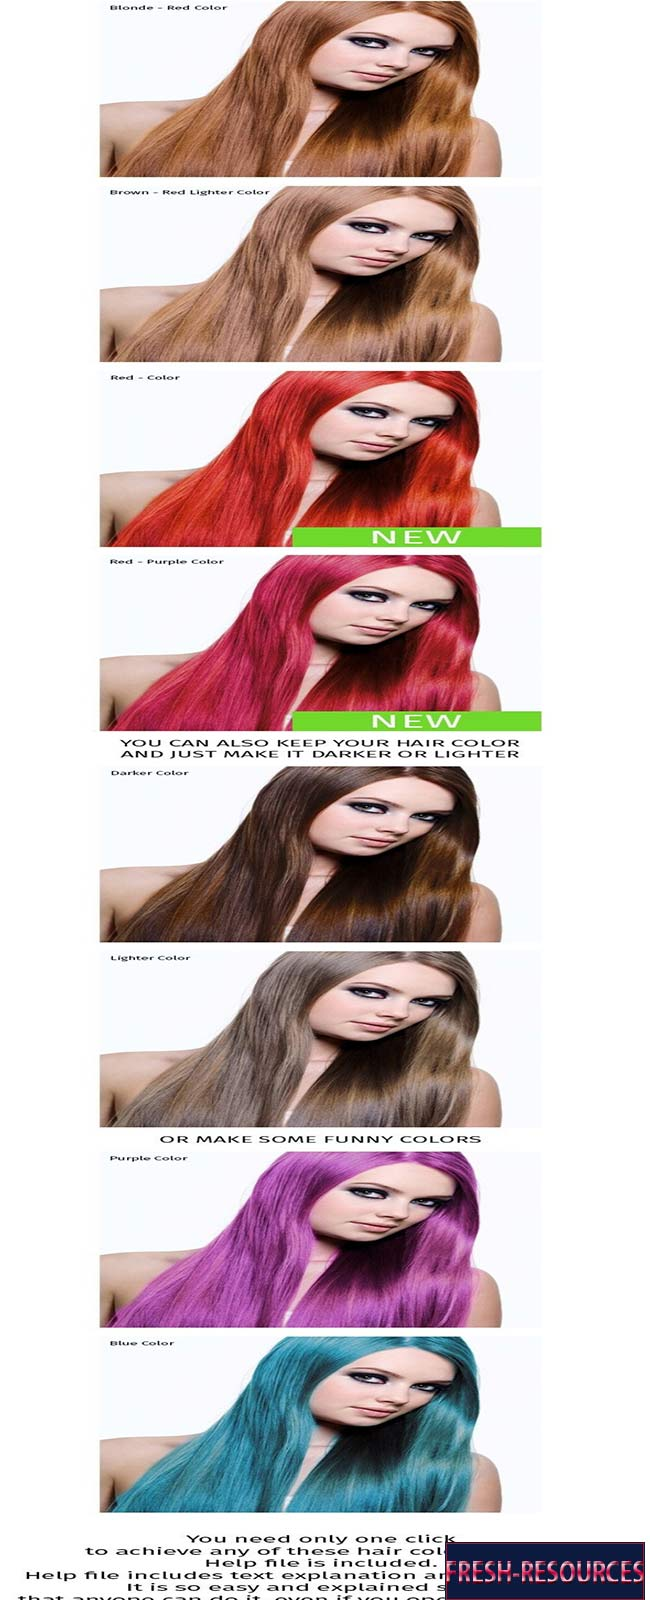 Hair Color Photoshop Action Free Download Fresh Resources